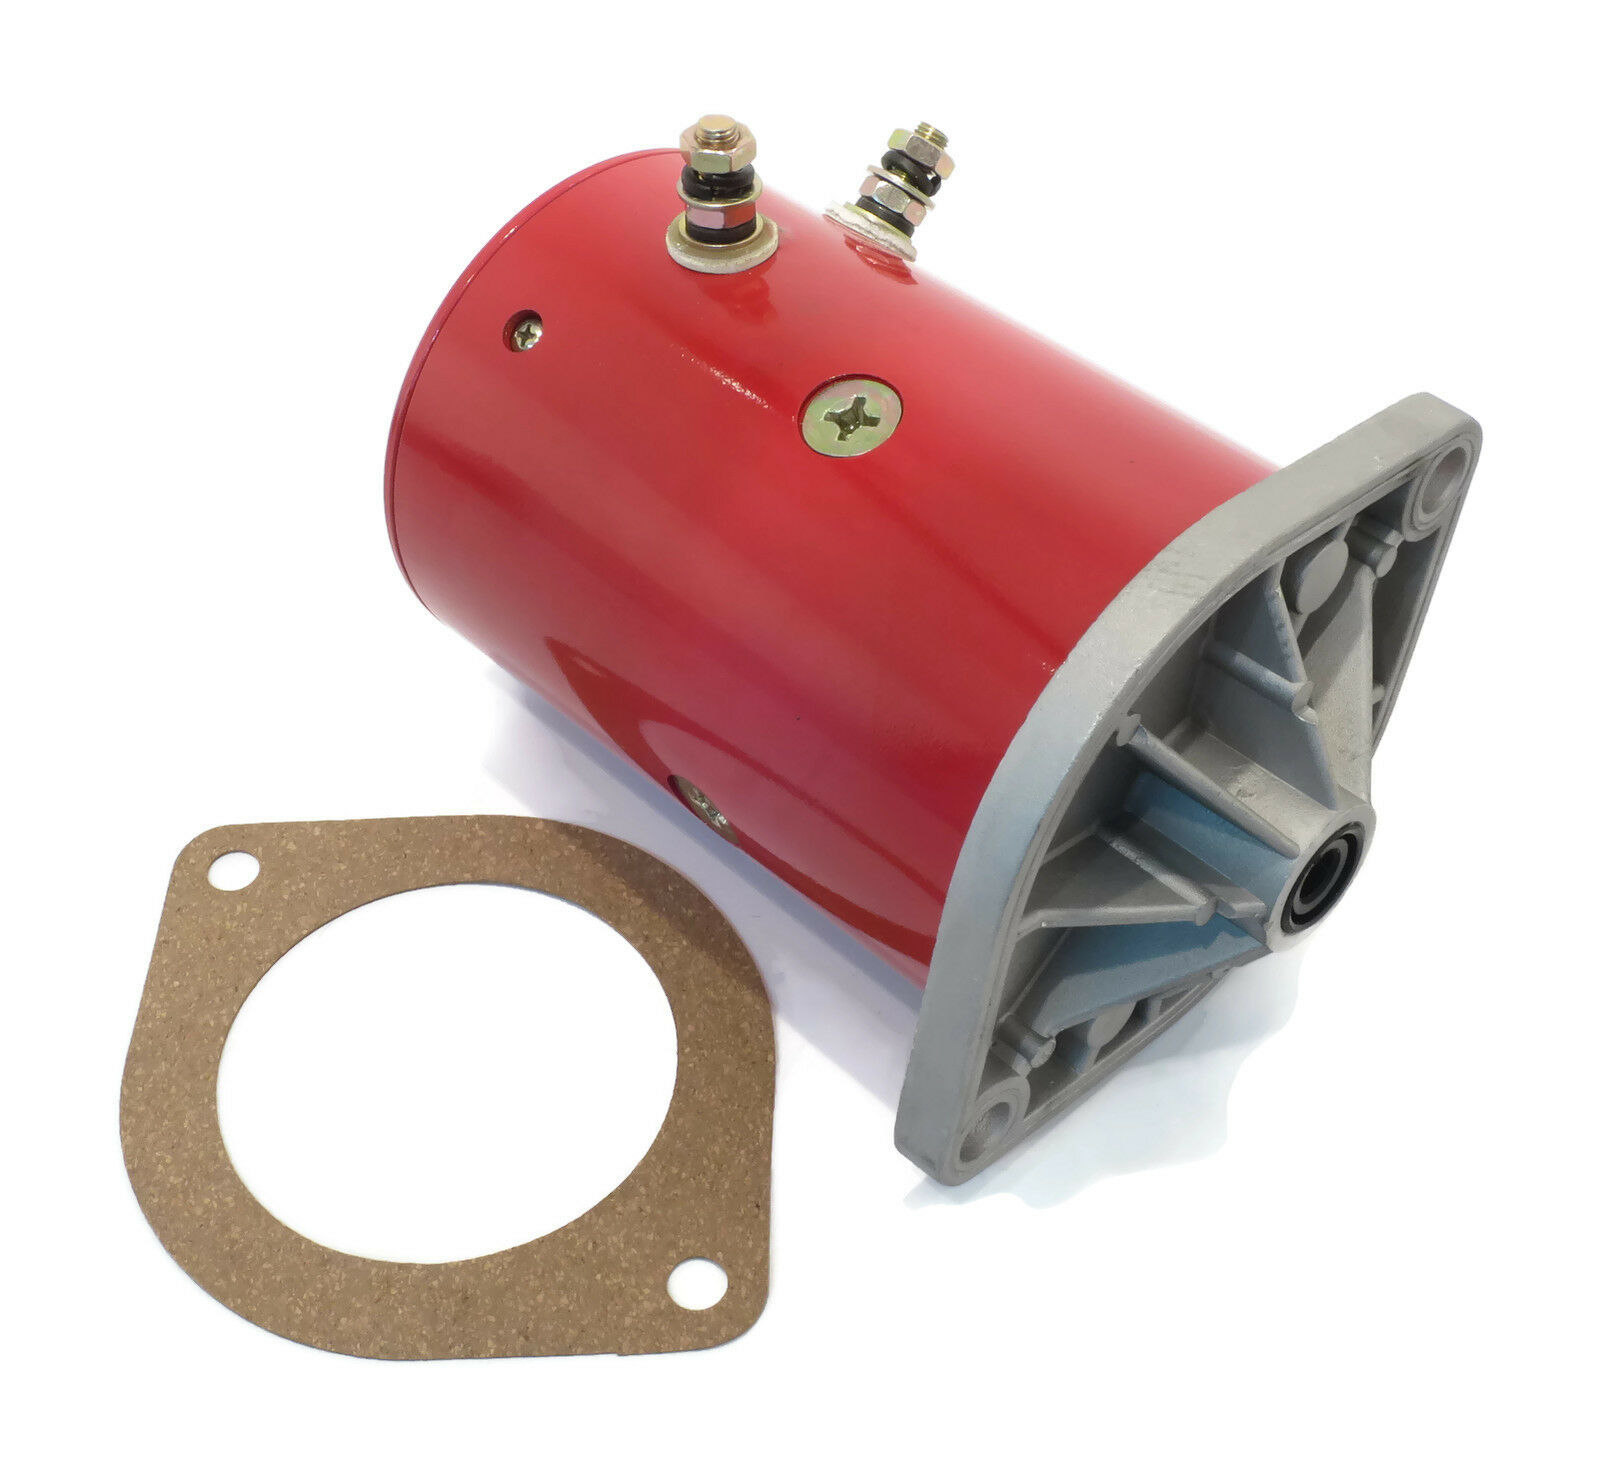 Plow motor w gasket for fisher a5819 western 56133 for Fisher snow plow pump replacement motor